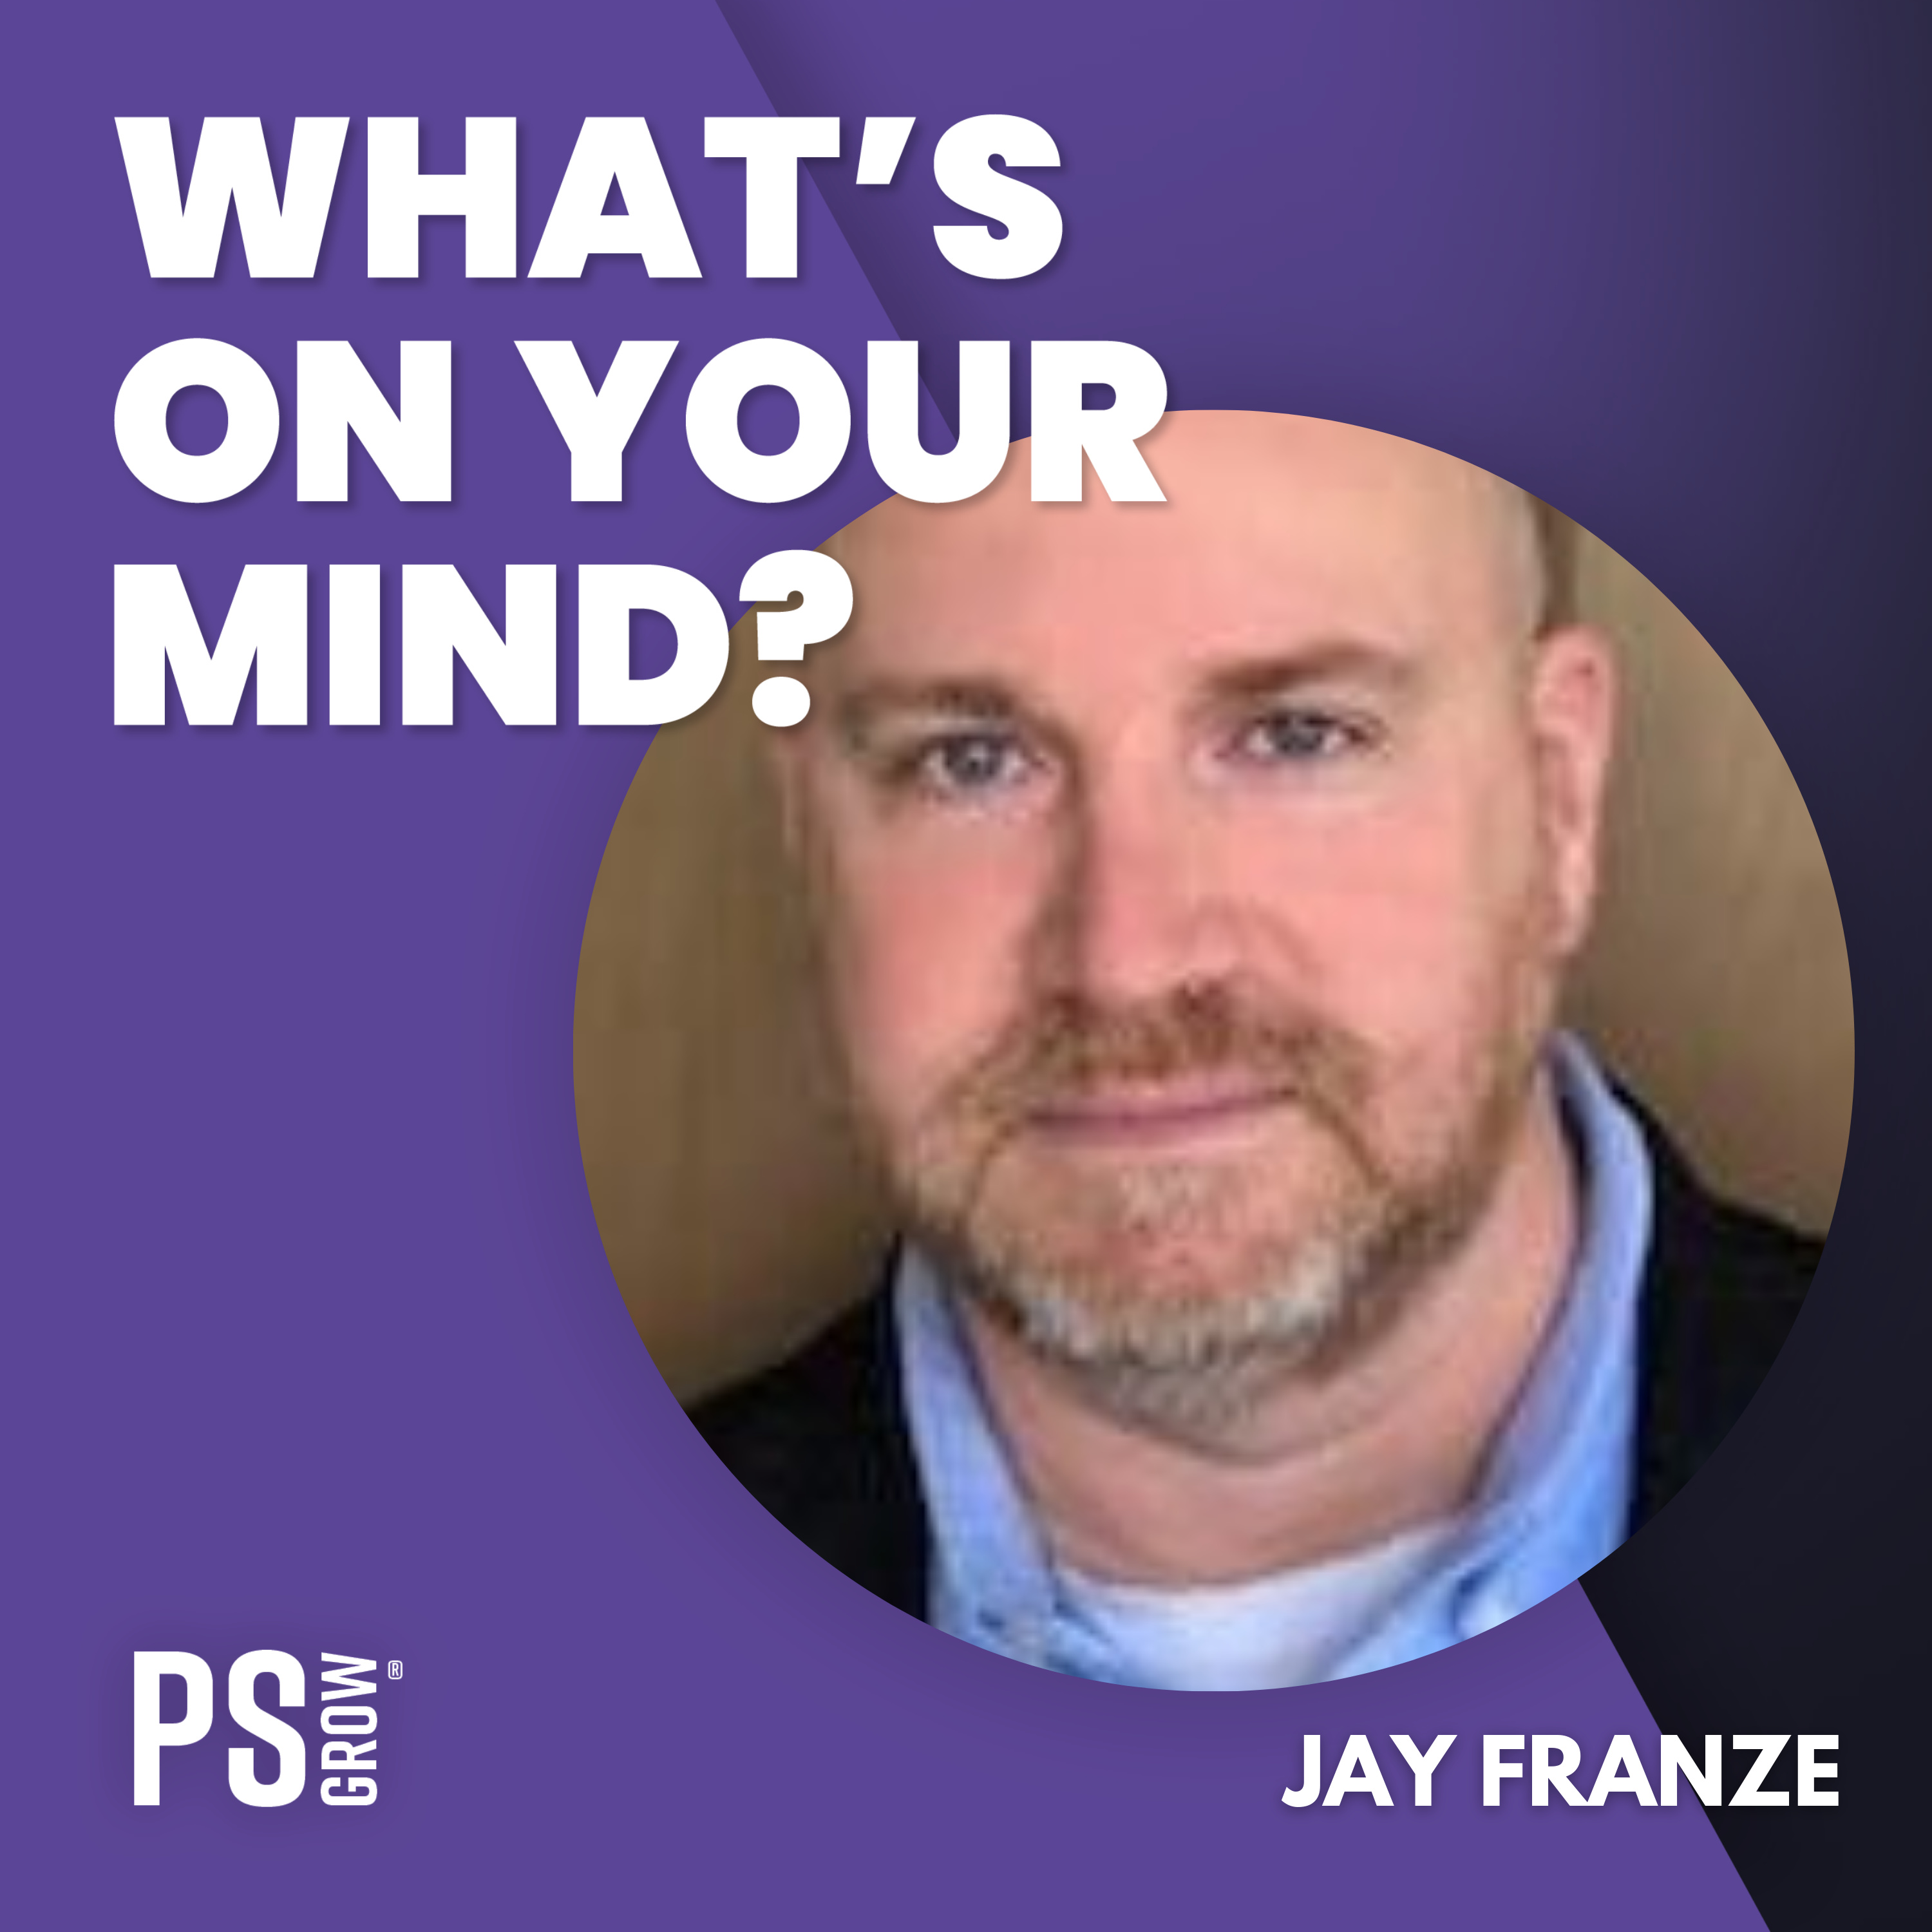 WOYM 112 Jay Franze On His Journey From Sound Engineer To Becoming VP at G4S   What's On Your Mind?